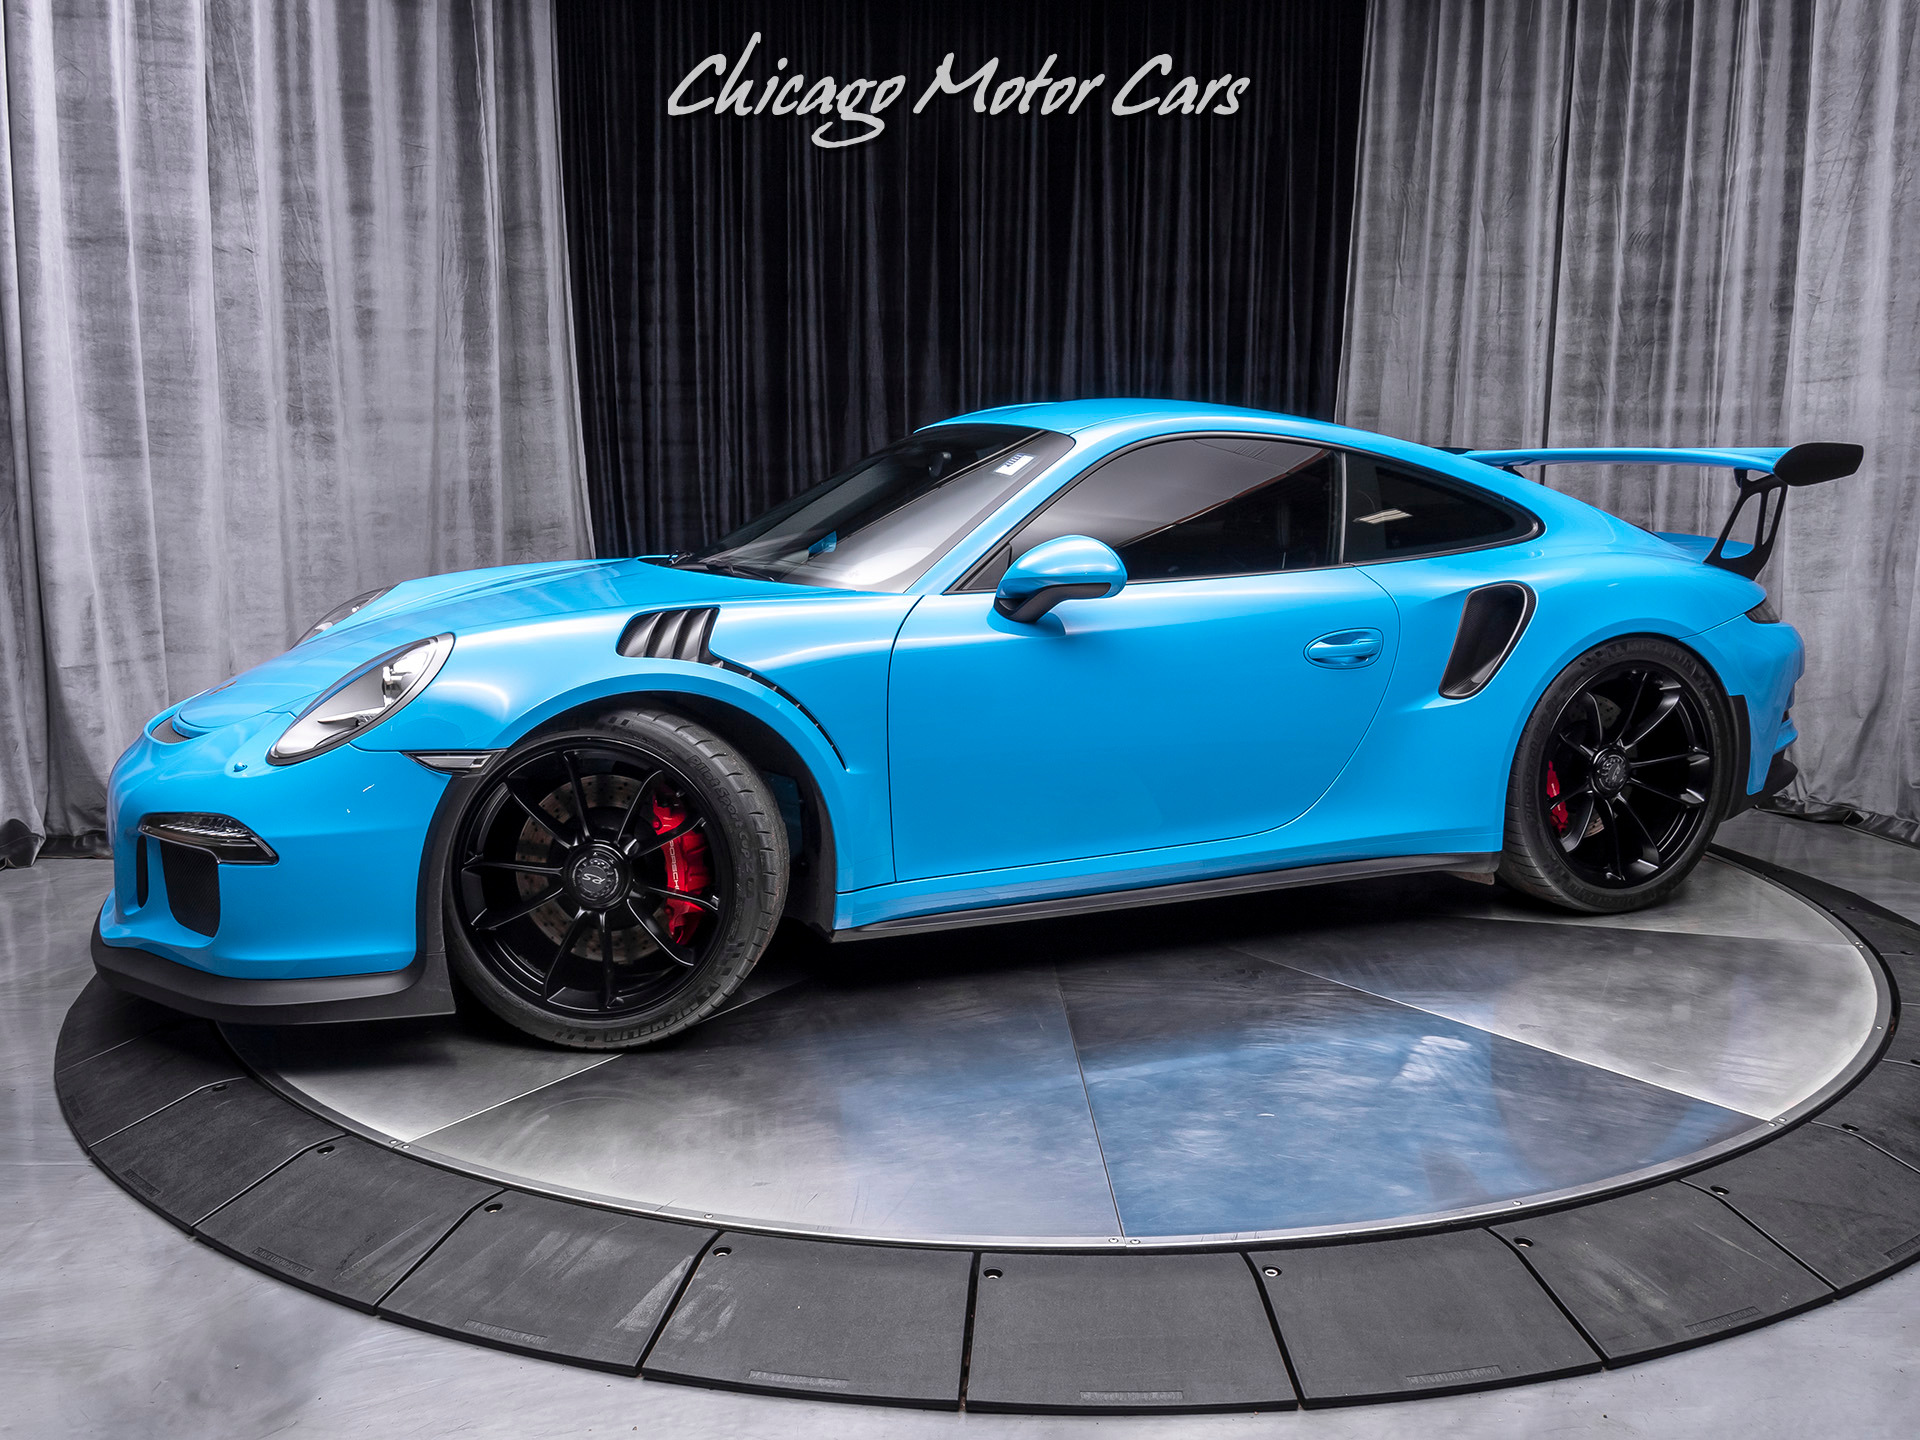 Used 2016 Porsche 911 Gt3 Rs Coupe Pts Mexico Blue For Sale Special Pricing Chicago Motor Cars Stock Gs192687